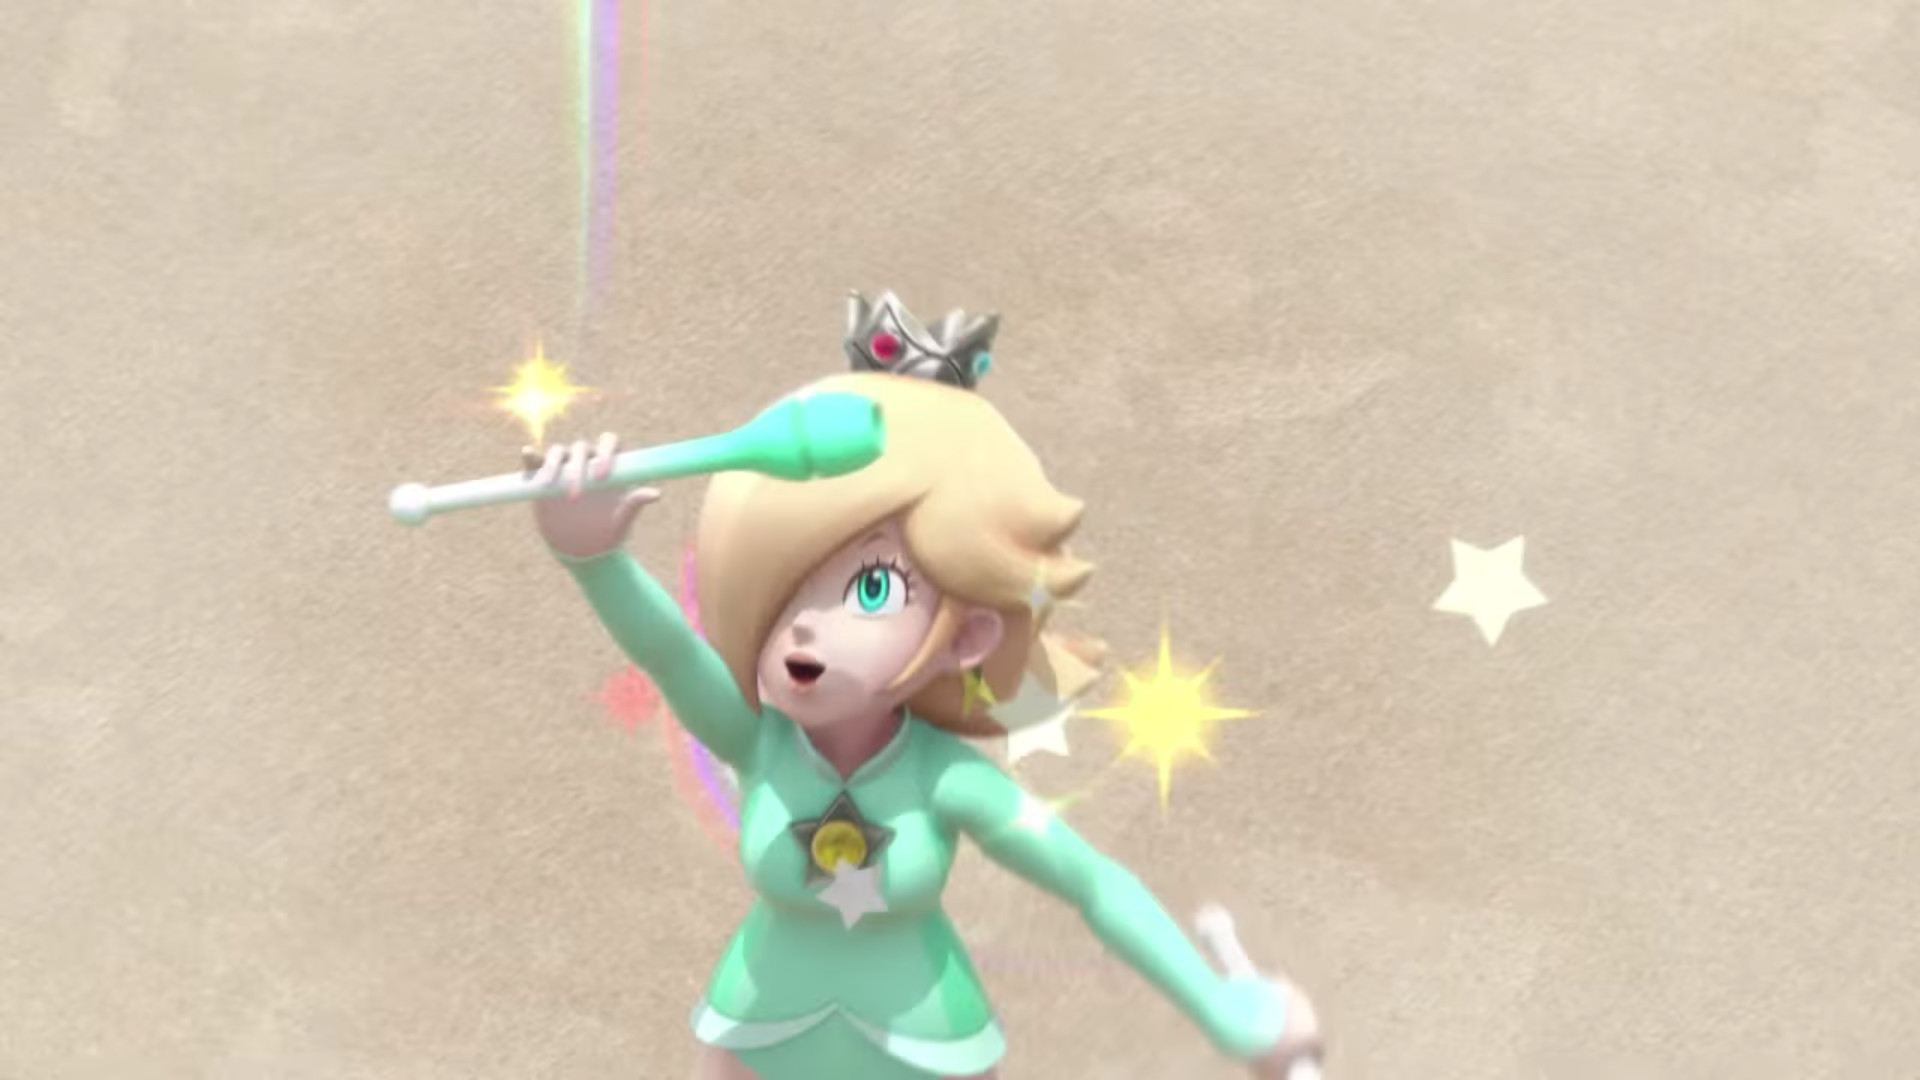 1920x1080 Image - Rio 2016 Rosalina 3.png | Animated Foot Scene Wiki | FANDOM powered  by Wikia